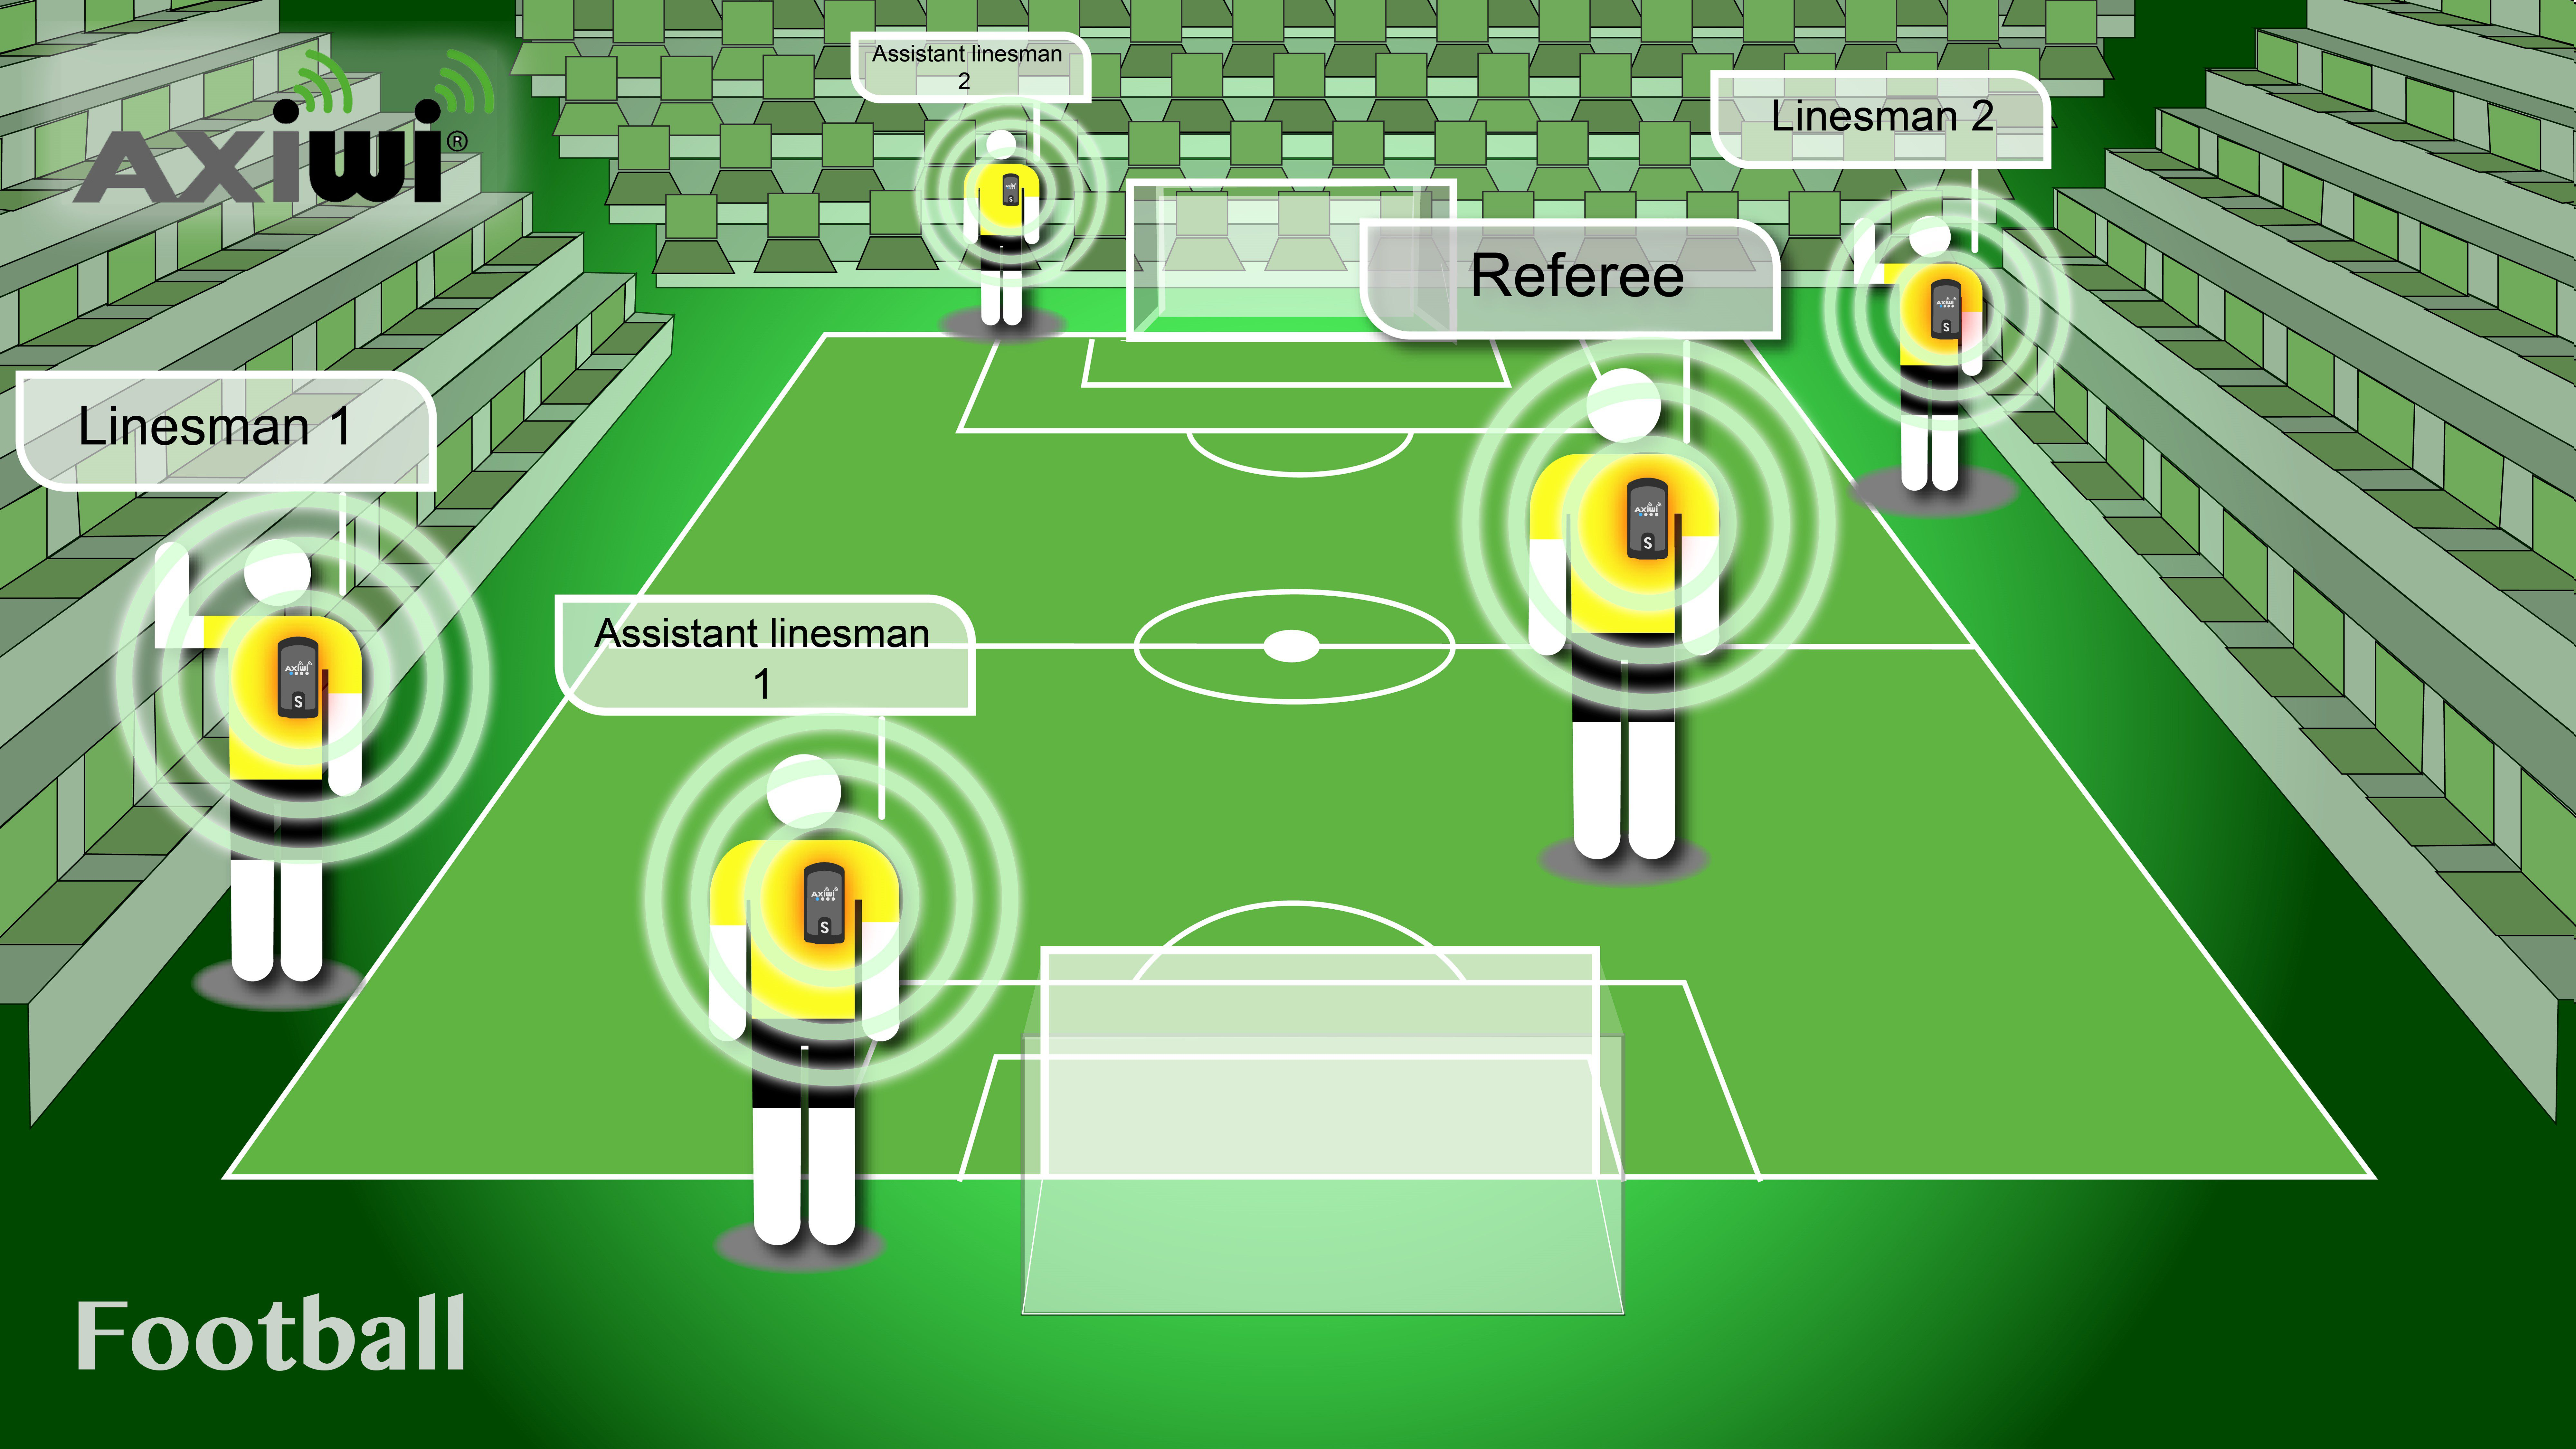 /axiwi-communication-system-referee-soccer